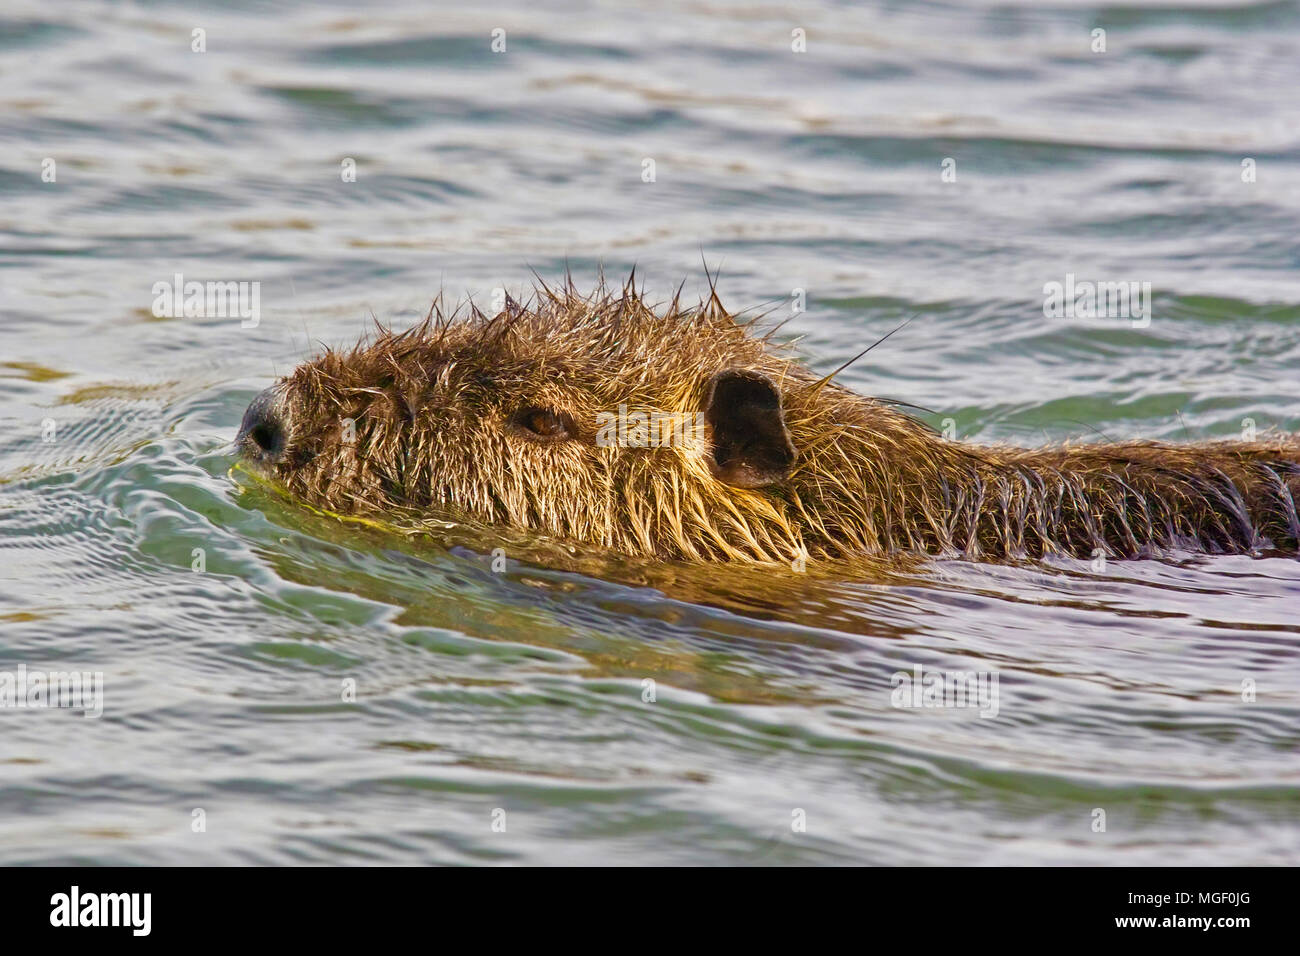 close-up of a coypu while is swimming in a river - Stock Image